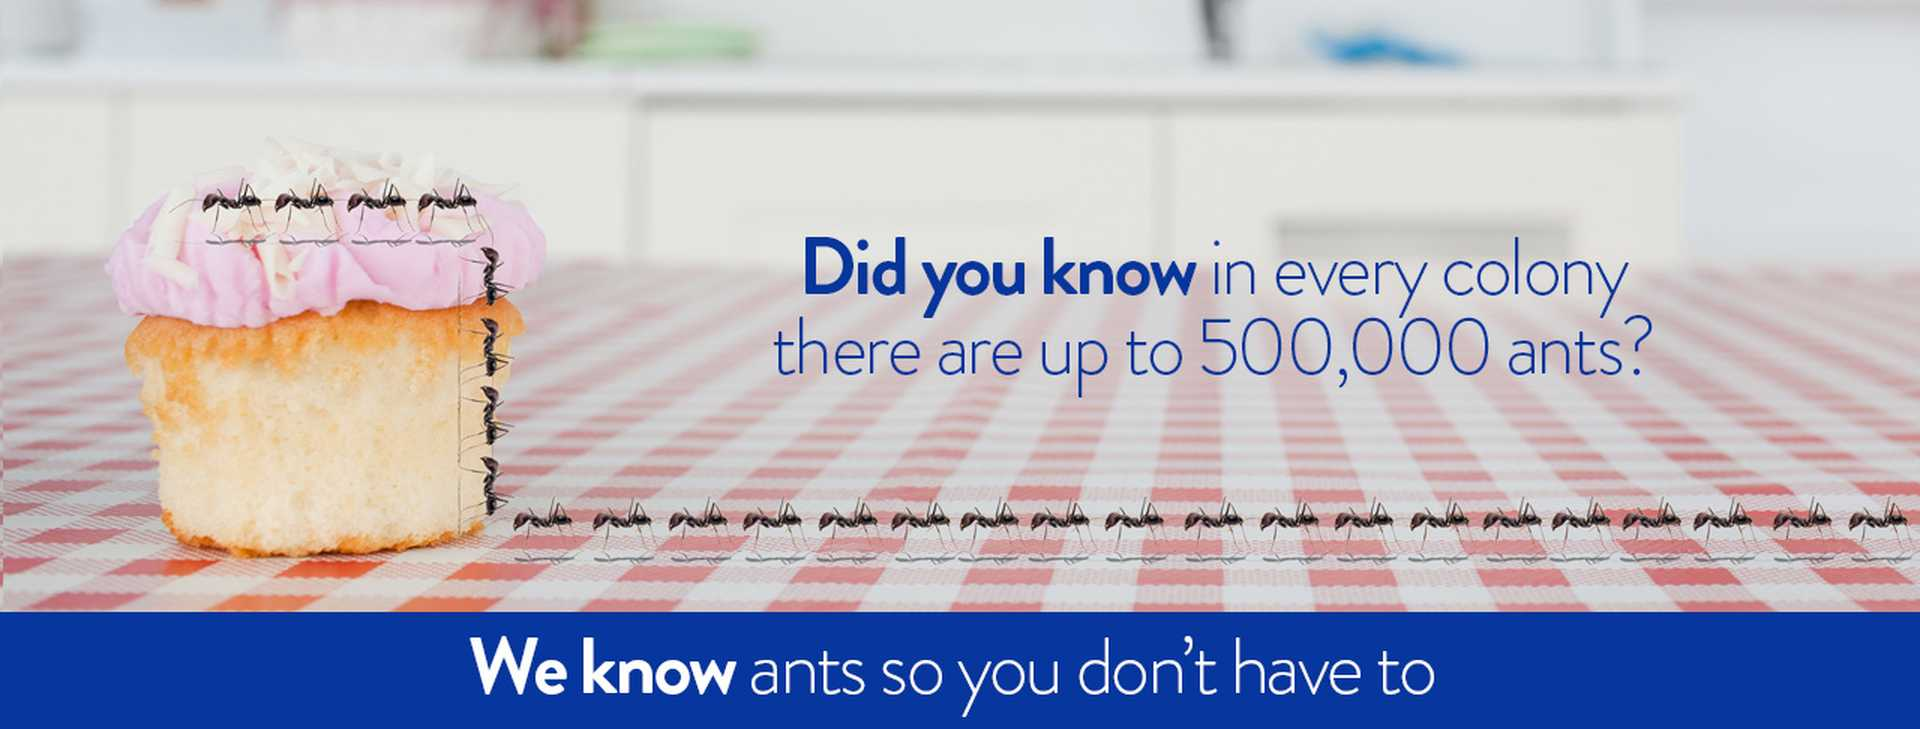 We know ants so you don't have to.